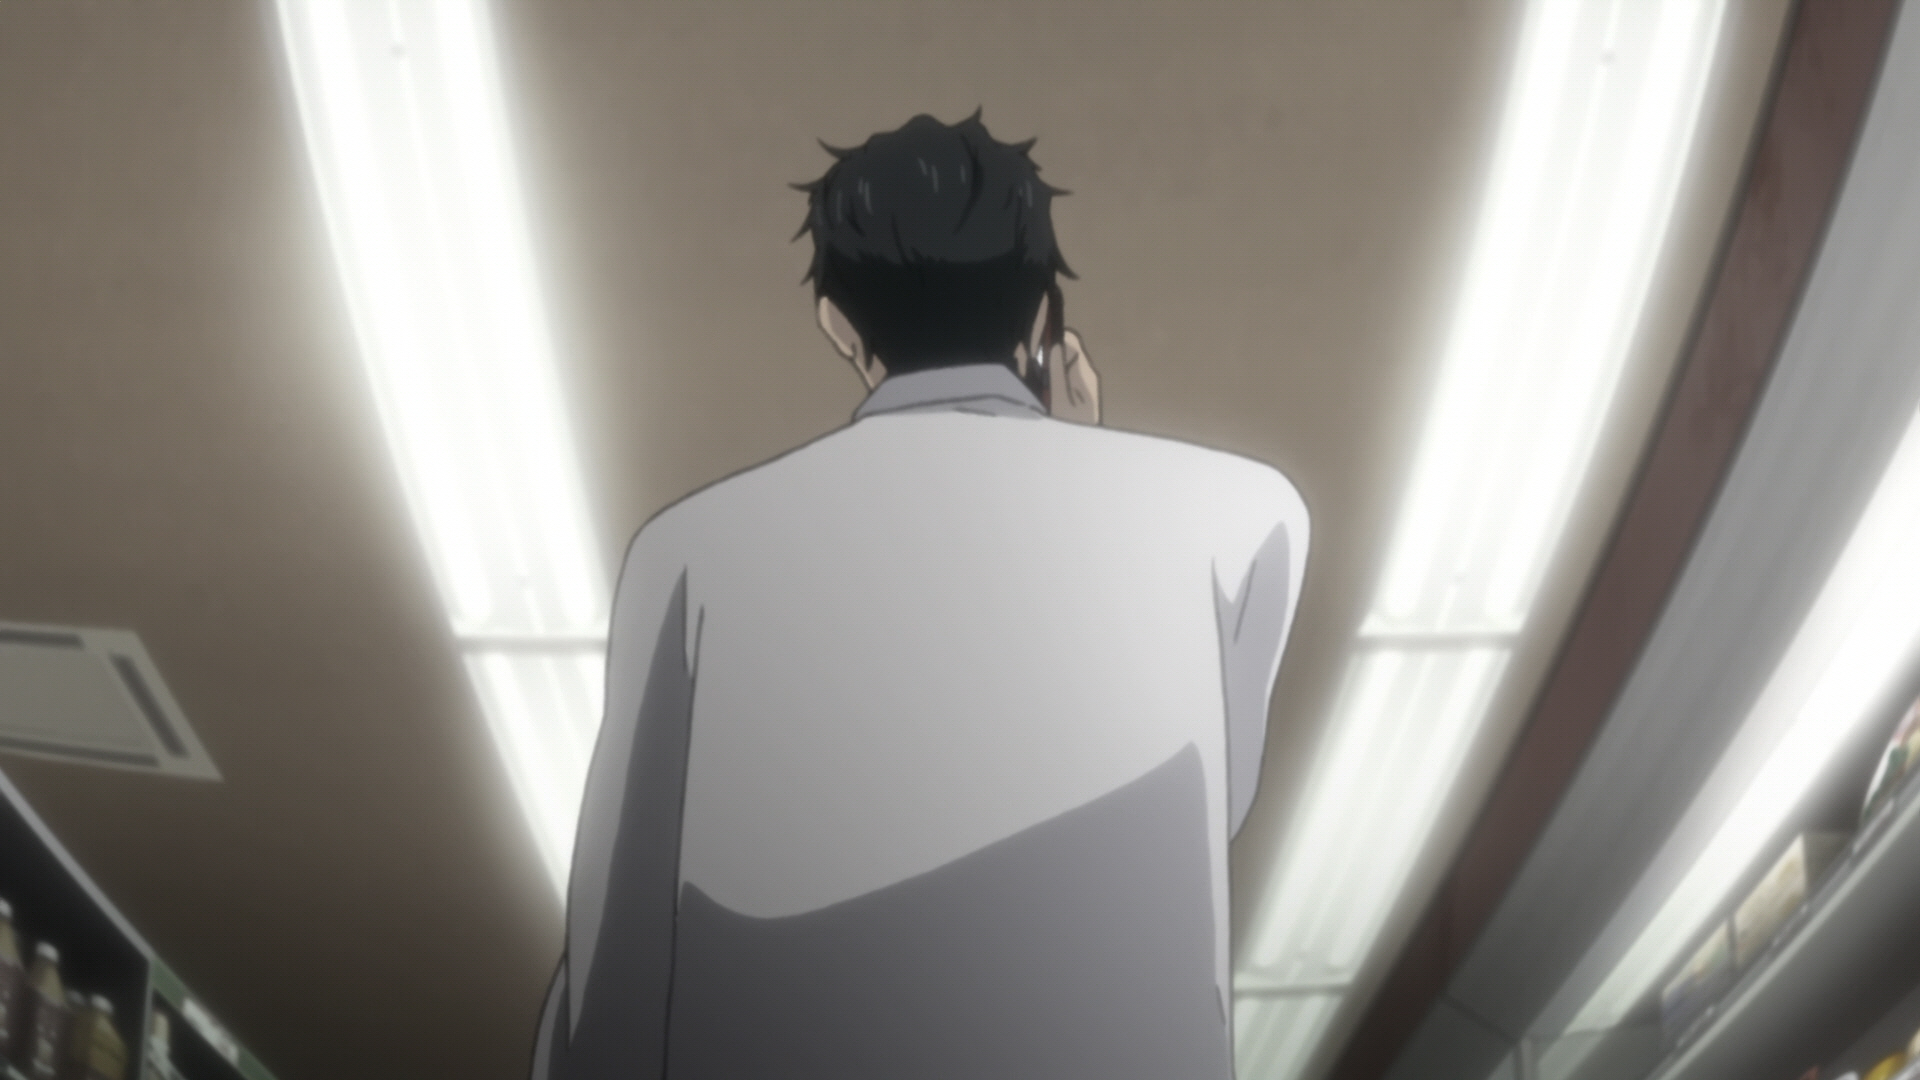 Steins Gate Episode 11 Dogma in Event Horizon 18